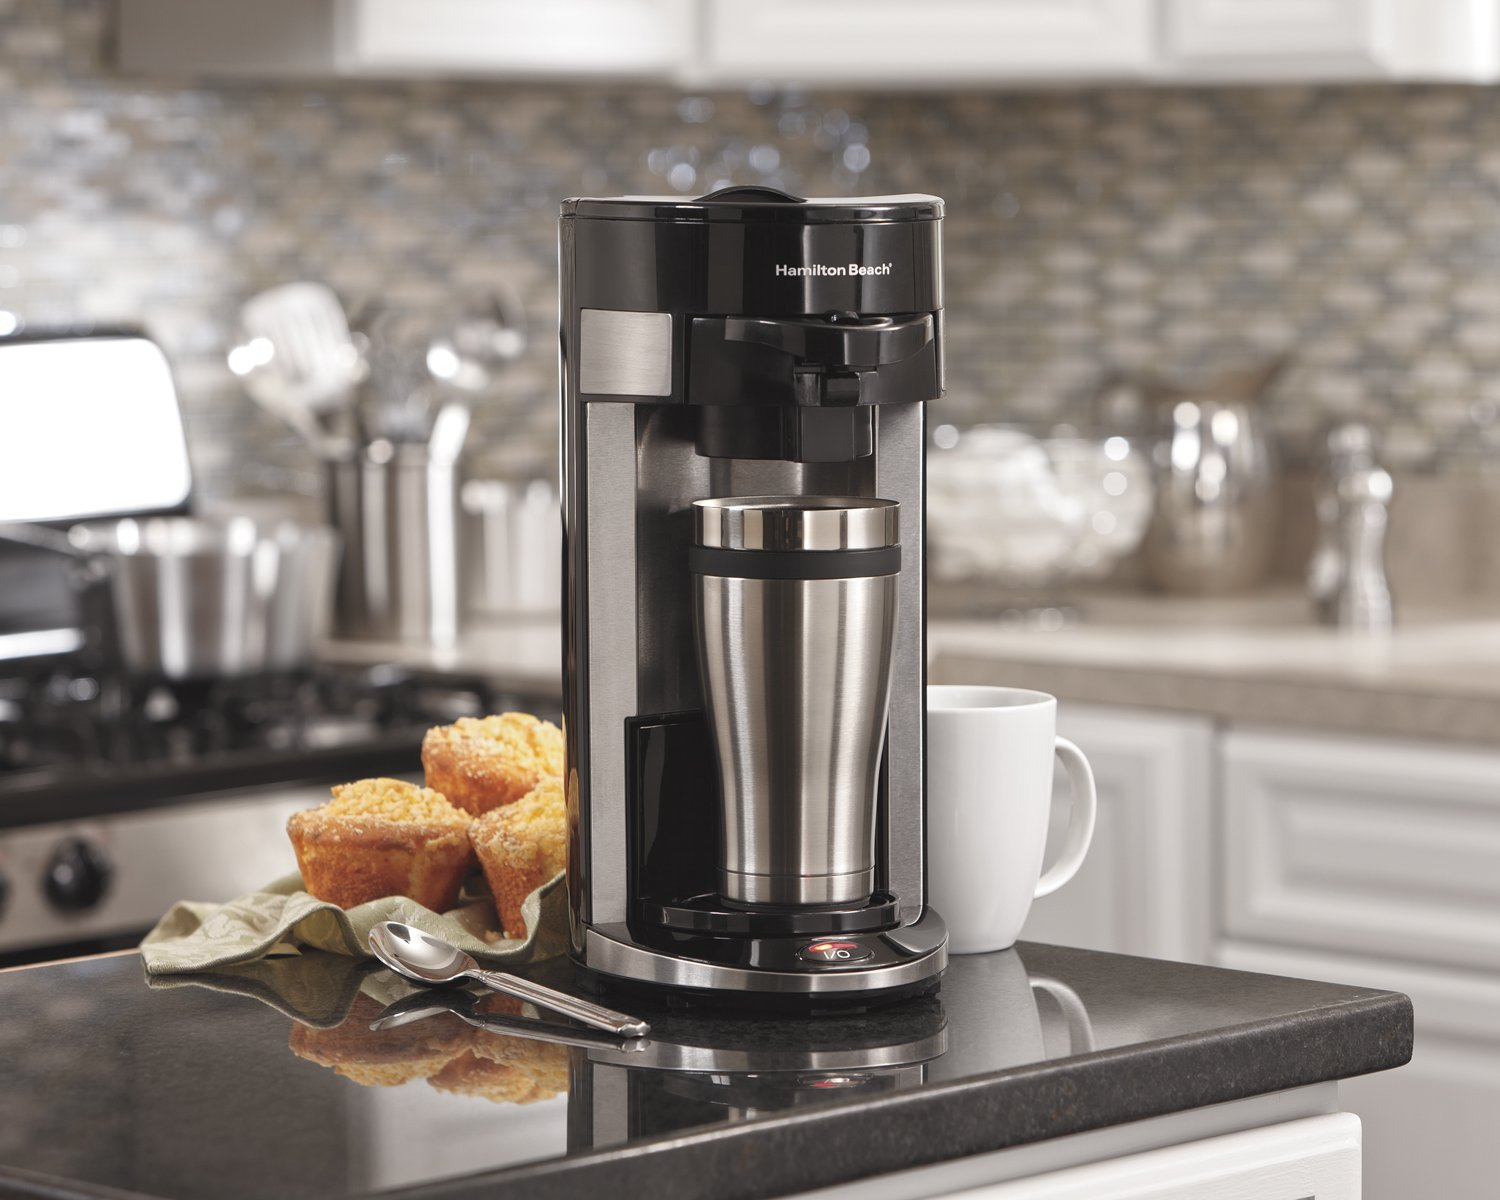 Hamilton Beach FlexBrew Single-Serve Coffee Maker Product Review